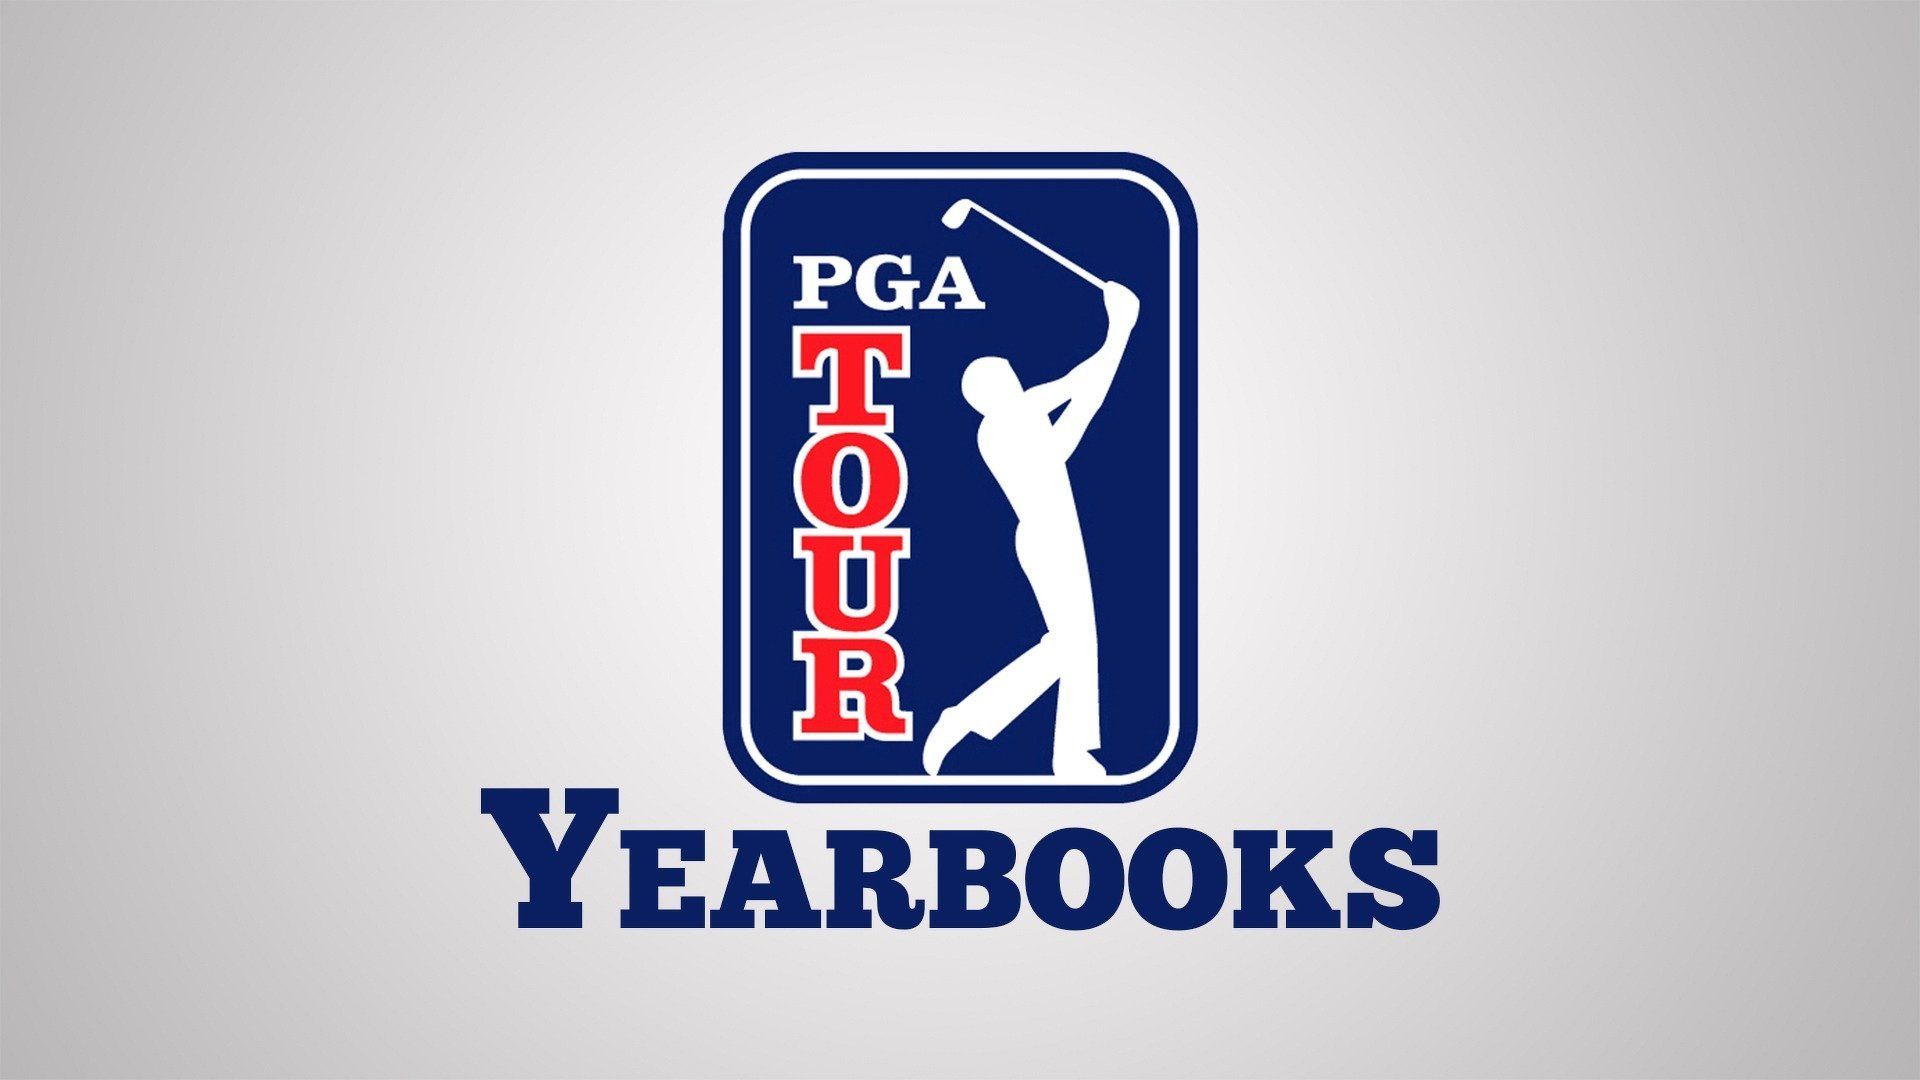 PGA TOUR Yearbooks